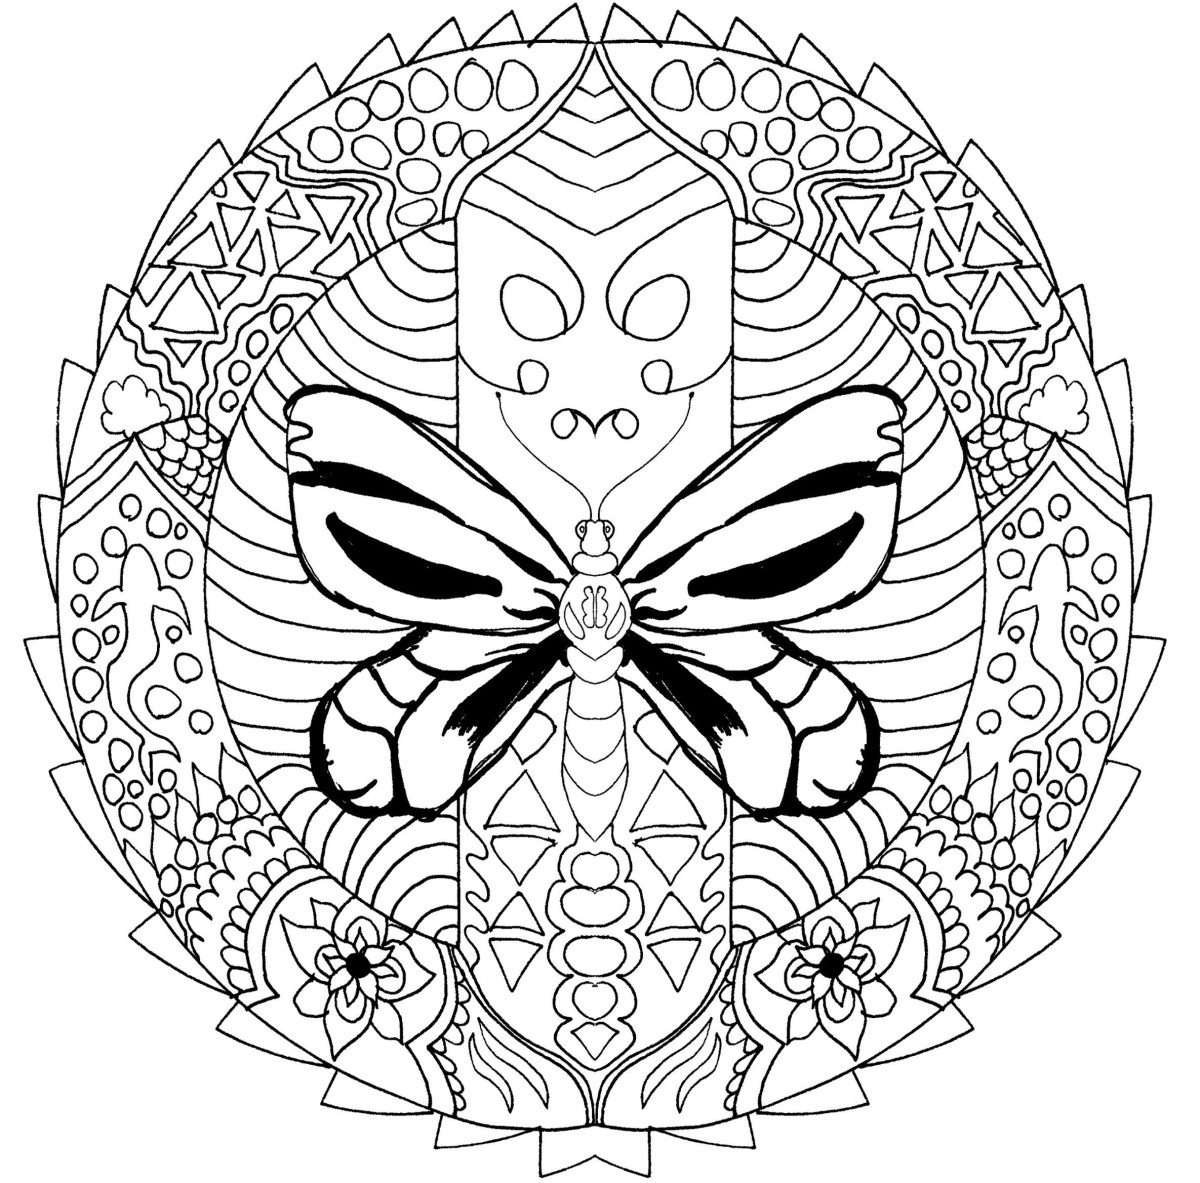 This adult printable coloring page features a dragonfly in the middle of a mandala-inspired design.